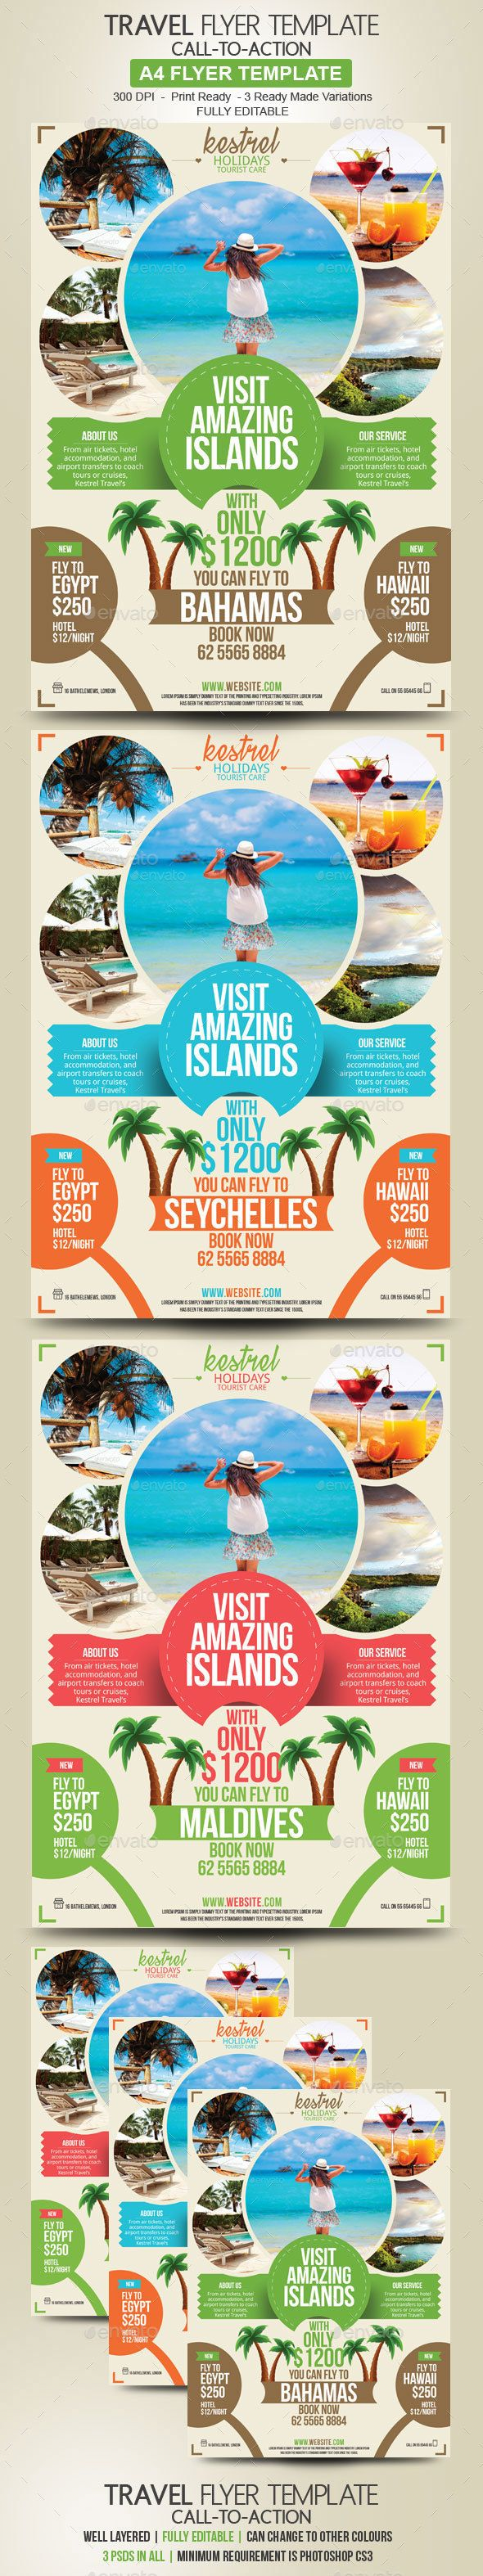 Travel Flyer Template PSD - Holidays Events